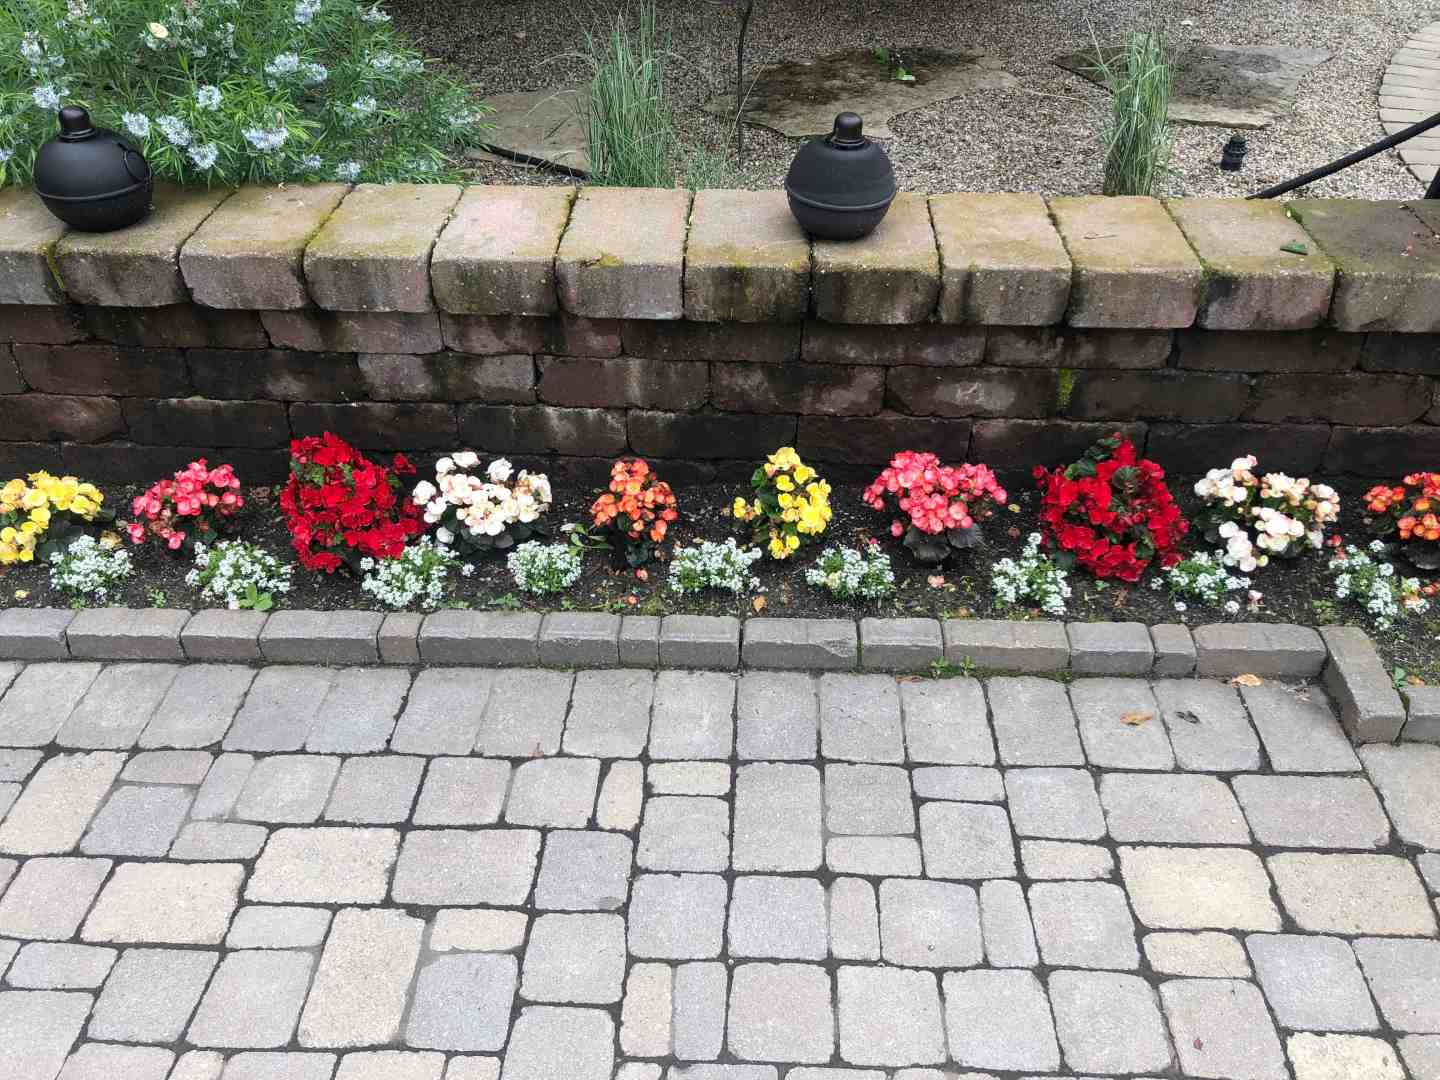 Bright flowers line a brick garden fence